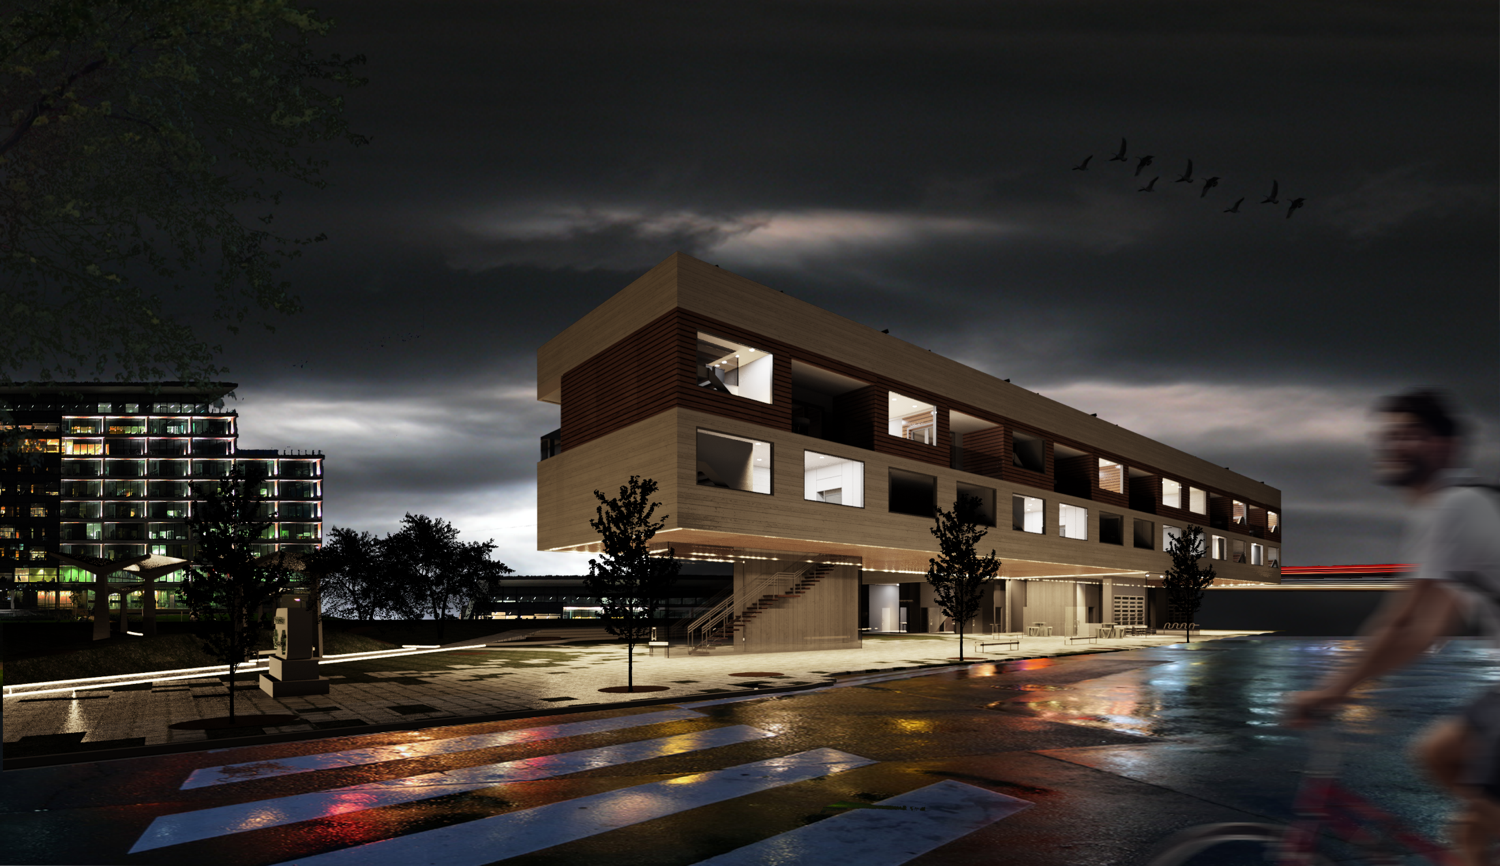 Render of stylish building at night time